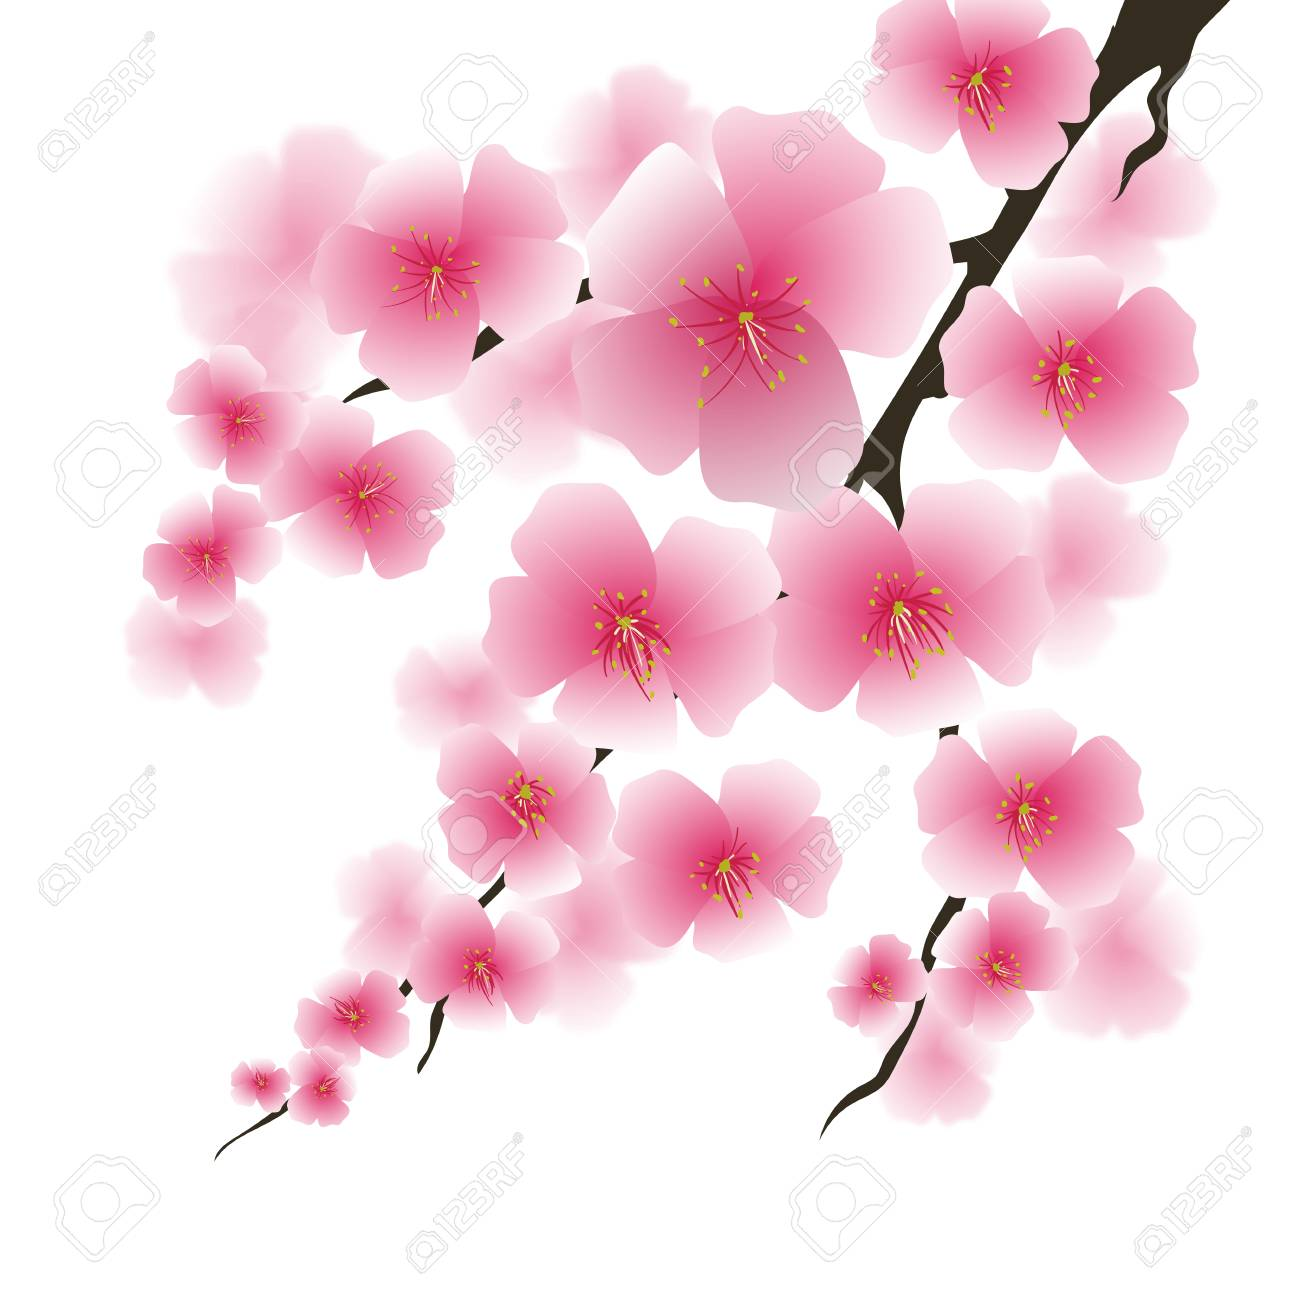 Spring Pink Flowers Isolated On White Background Sakura Japan